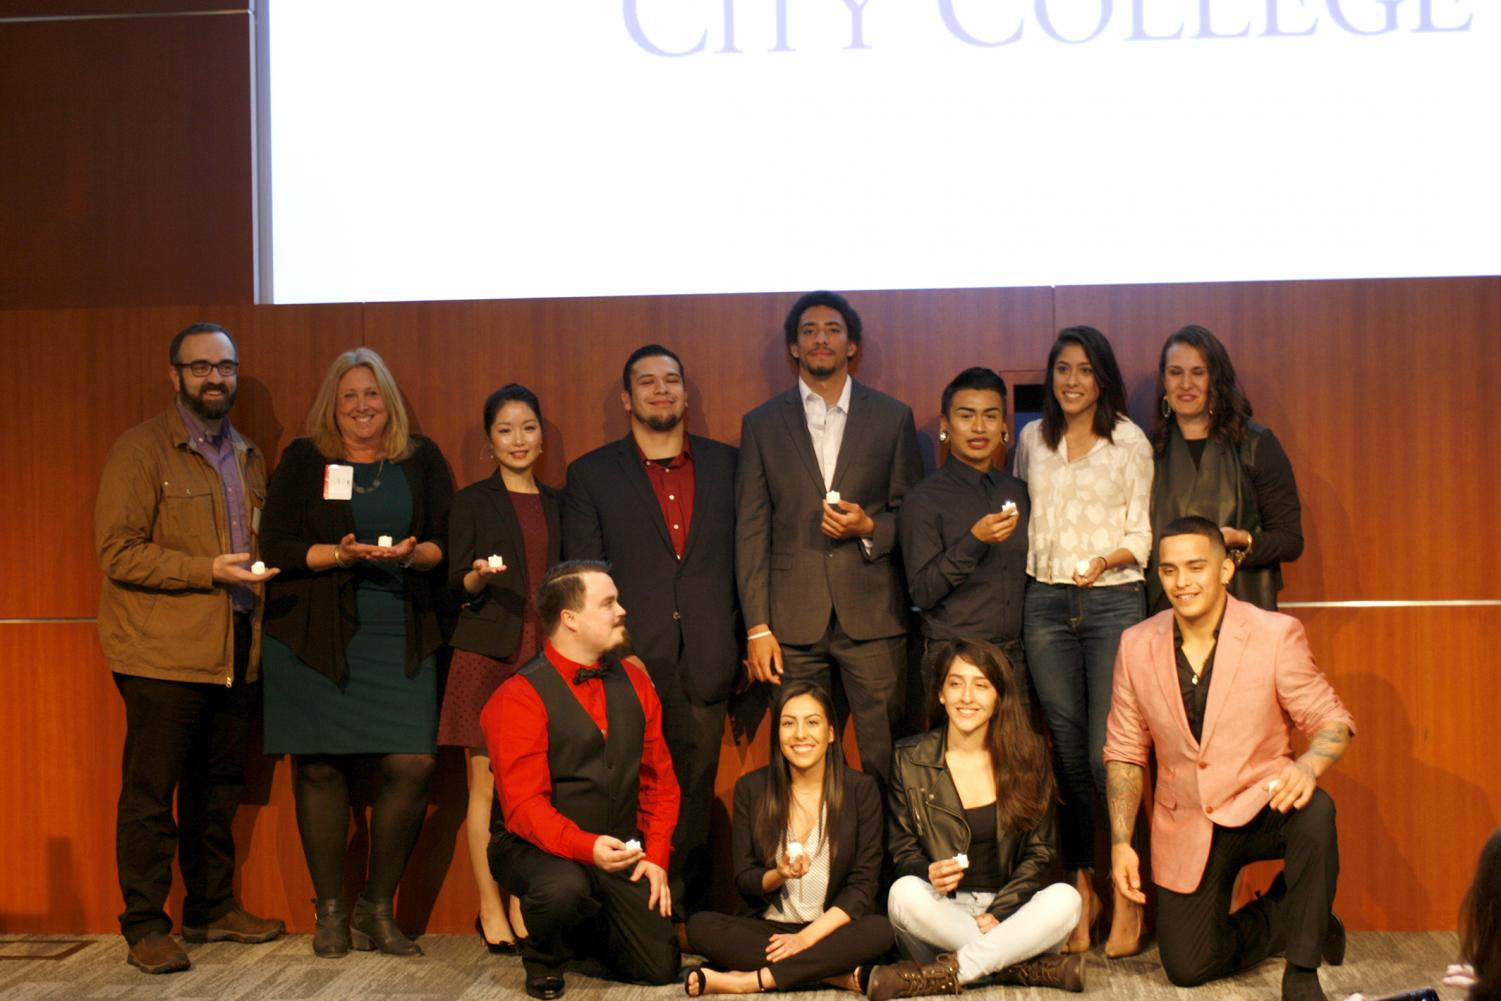 Faculty and students pose at the end of the Let Your Life Speak event in downtown San Jose's Adobe headquarters. From left, top to bottom: Chris Lancaster, Leslyn McCallum, Lilia Huang, Angel Coronado, Steven Sciplin, Ivan Perez, Rachel Davis, Shelley Giacalone, Kris Menge, Sabrina Maciel, Galy Jimenez and Thomas Guiterrez on March 23, 2018.